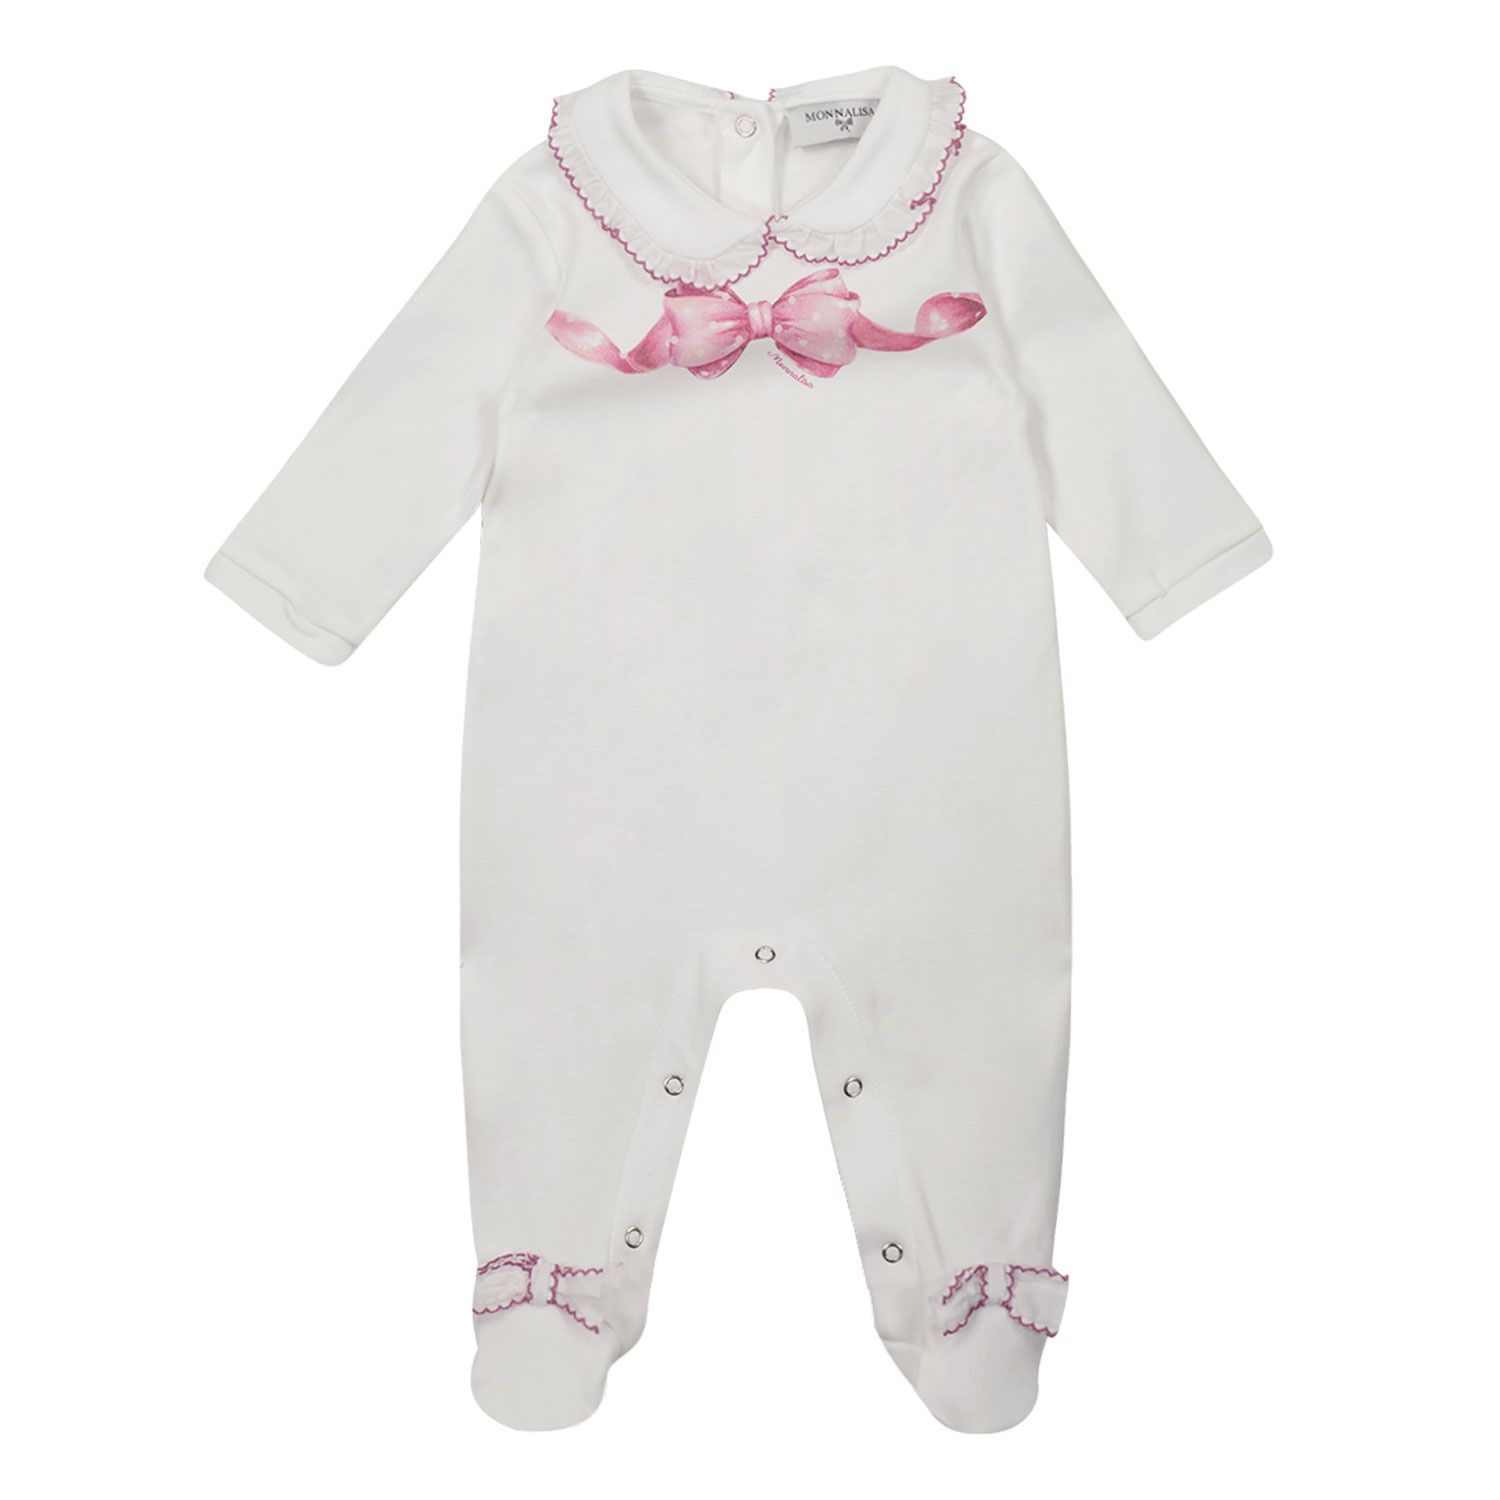 Picture of MonnaLisa 357211PK baby playsuit white